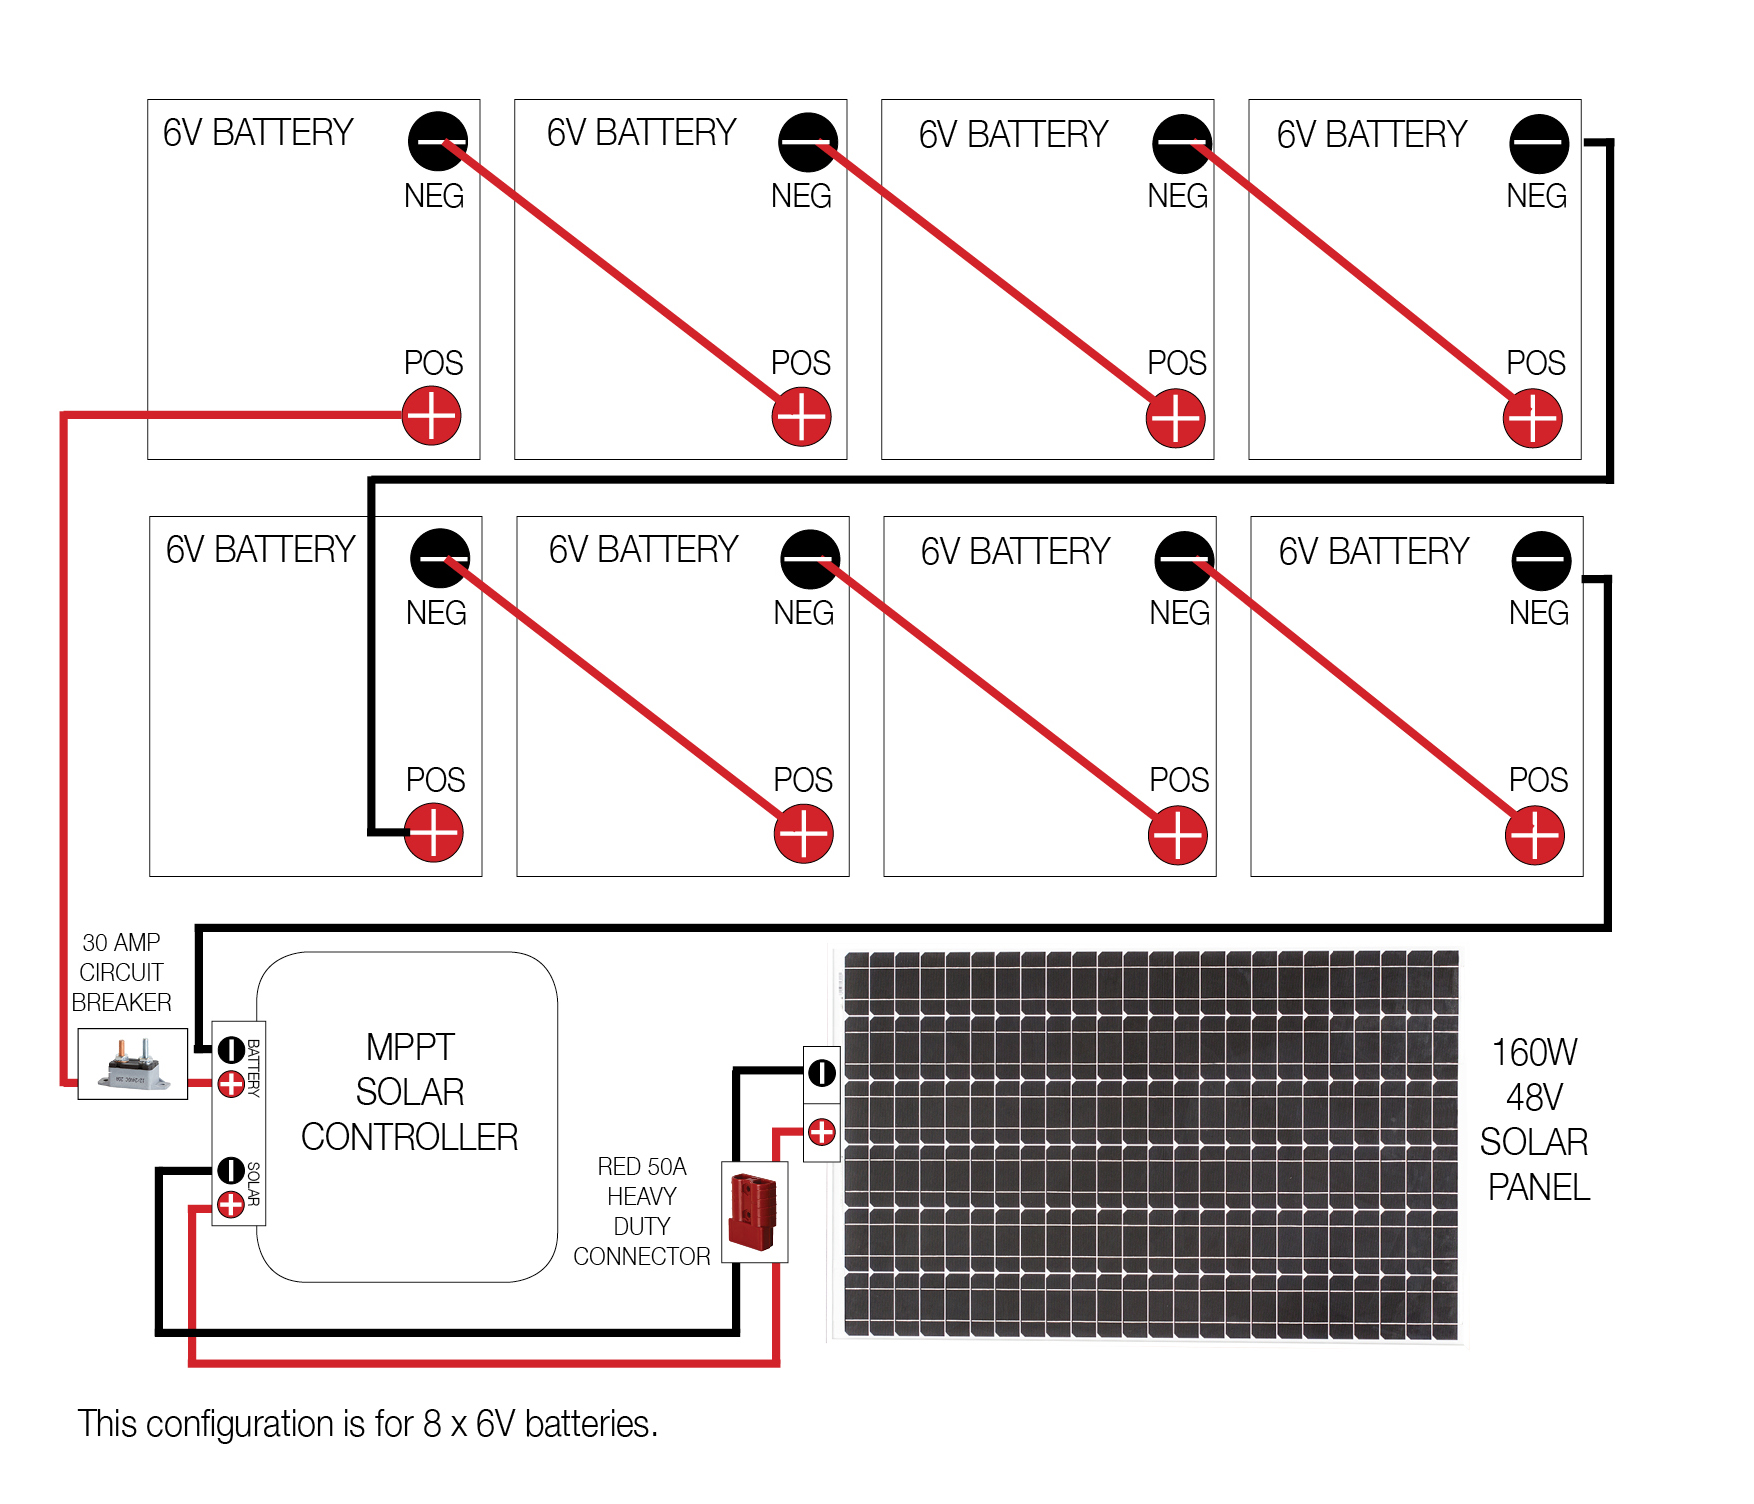 Golf Buggy Solar All New Kt 48v Charging System Cables Wiring Diagram Click To Enlarge Image 2